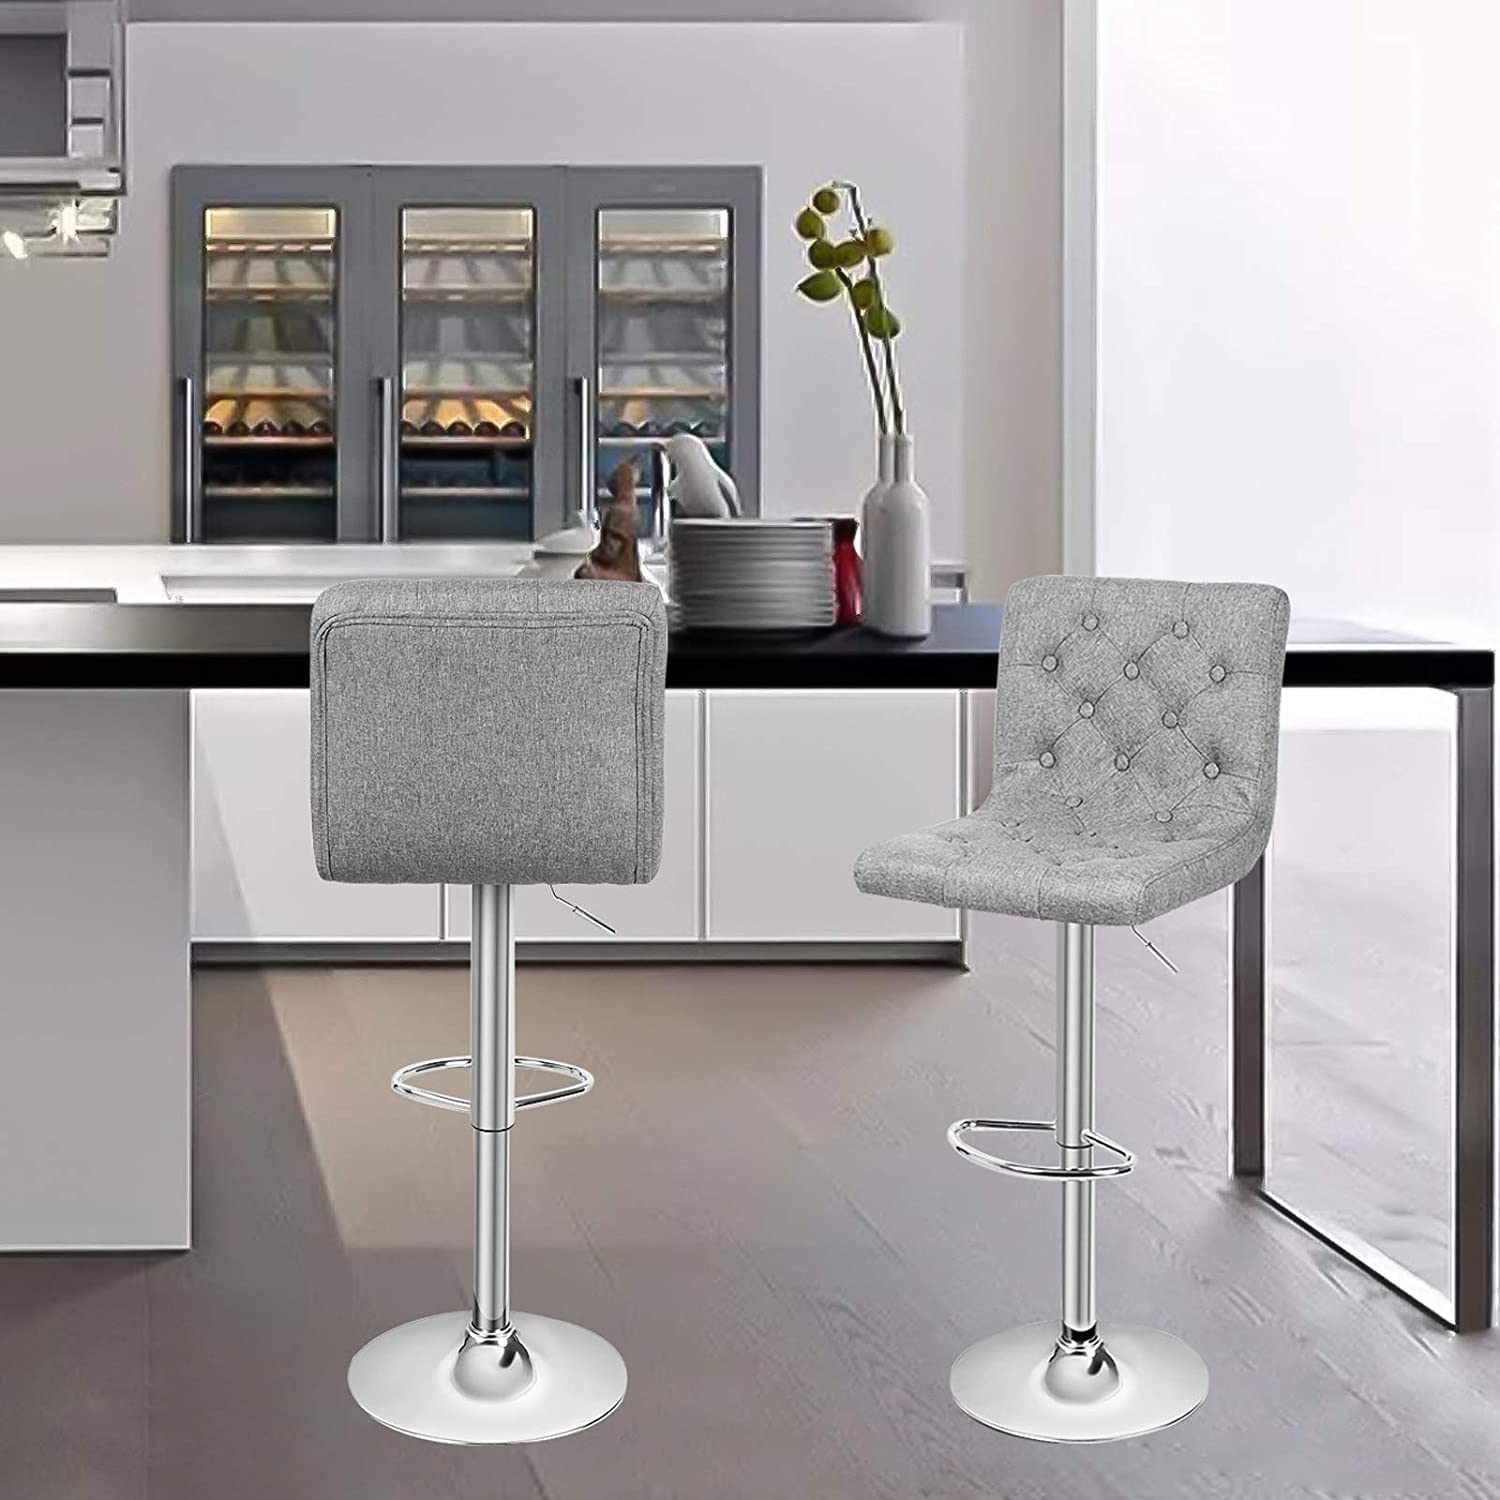 Dark Gray Square Adjustable Height Swivel Bar Stool Lift Pub Chair (Fabric Gray) Set of 2